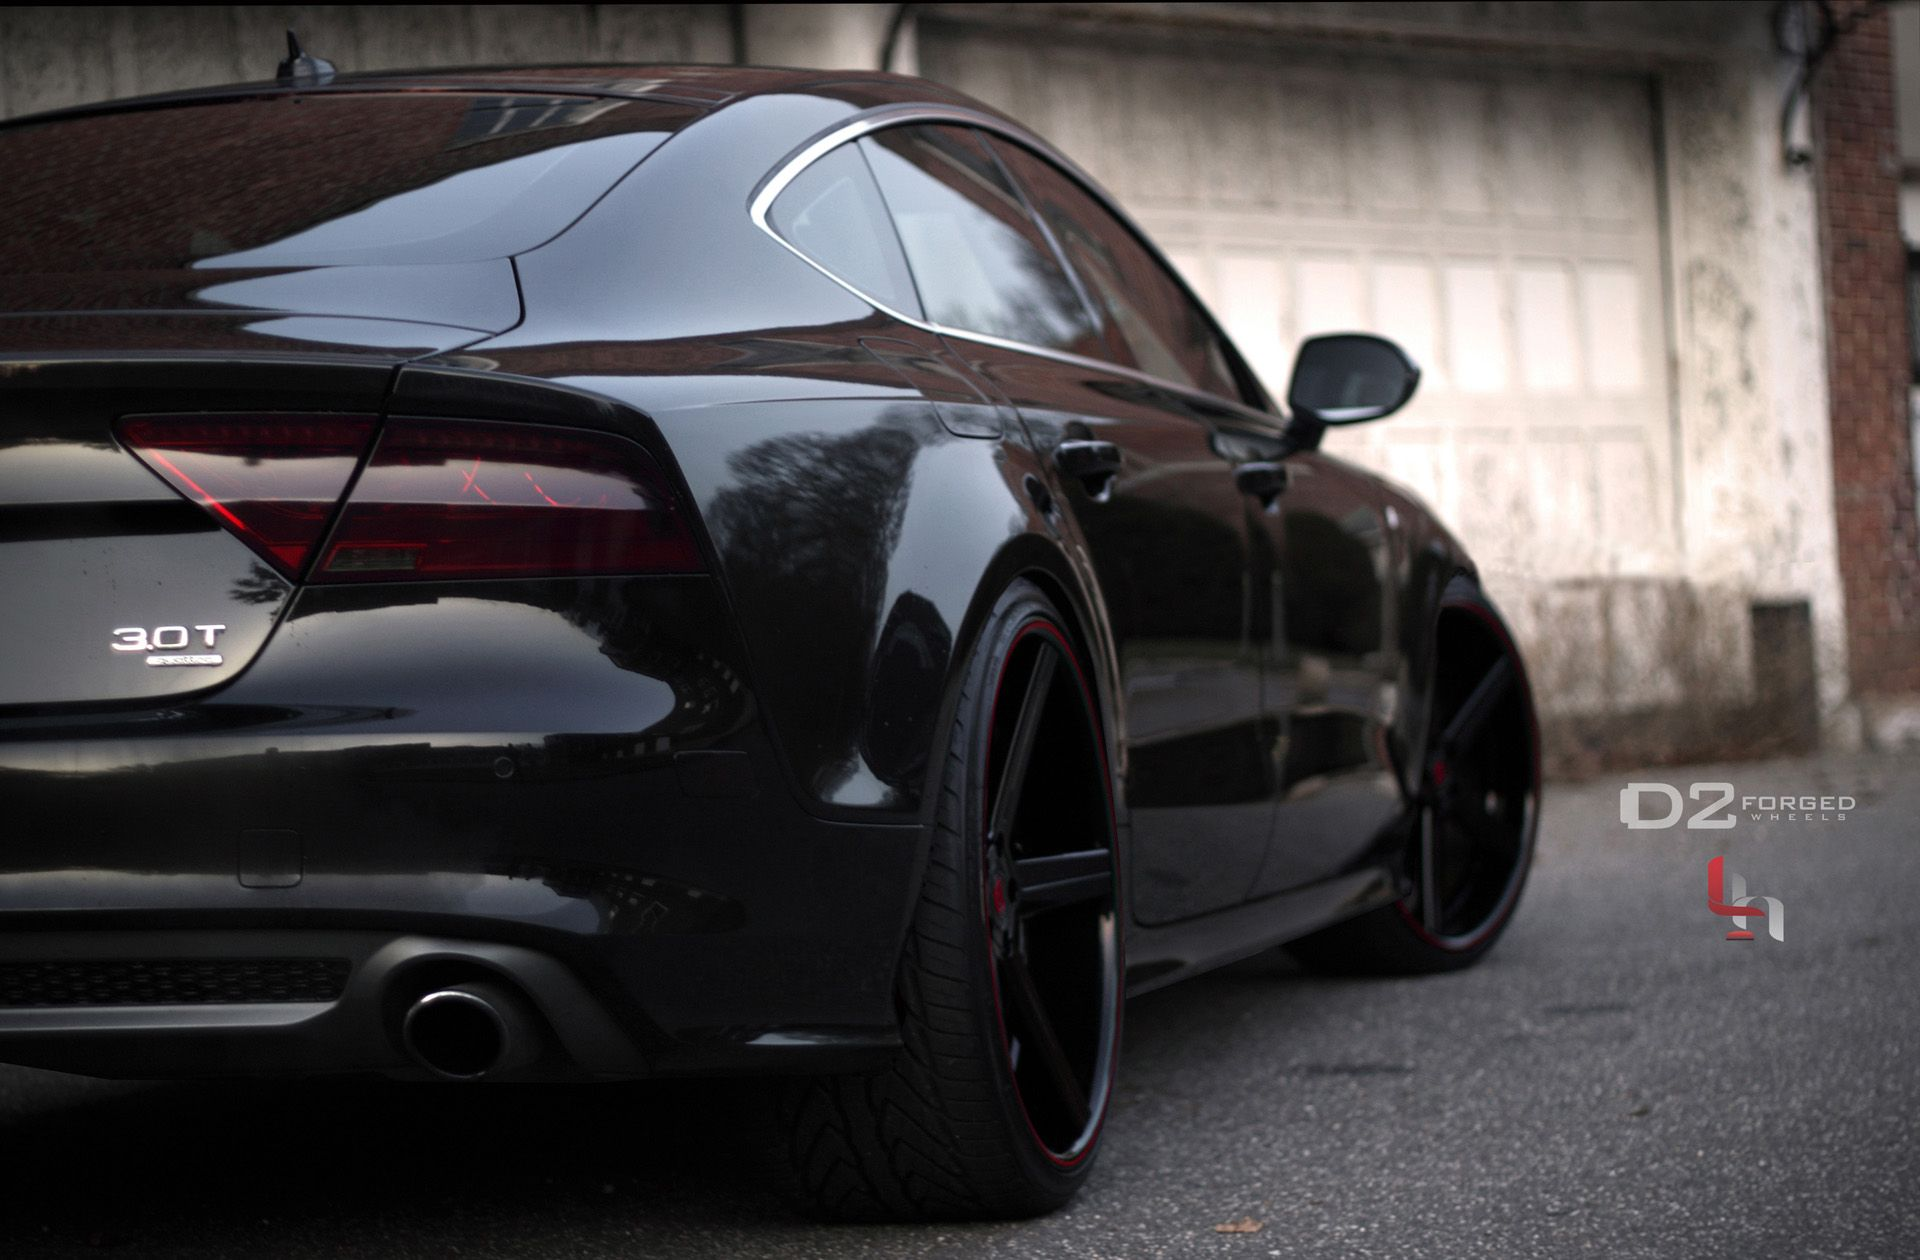 audi a7 with tuning desktop wallpaper audi wallpapers pinterest audi a7 audi and wheels. Black Bedroom Furniture Sets. Home Design Ideas